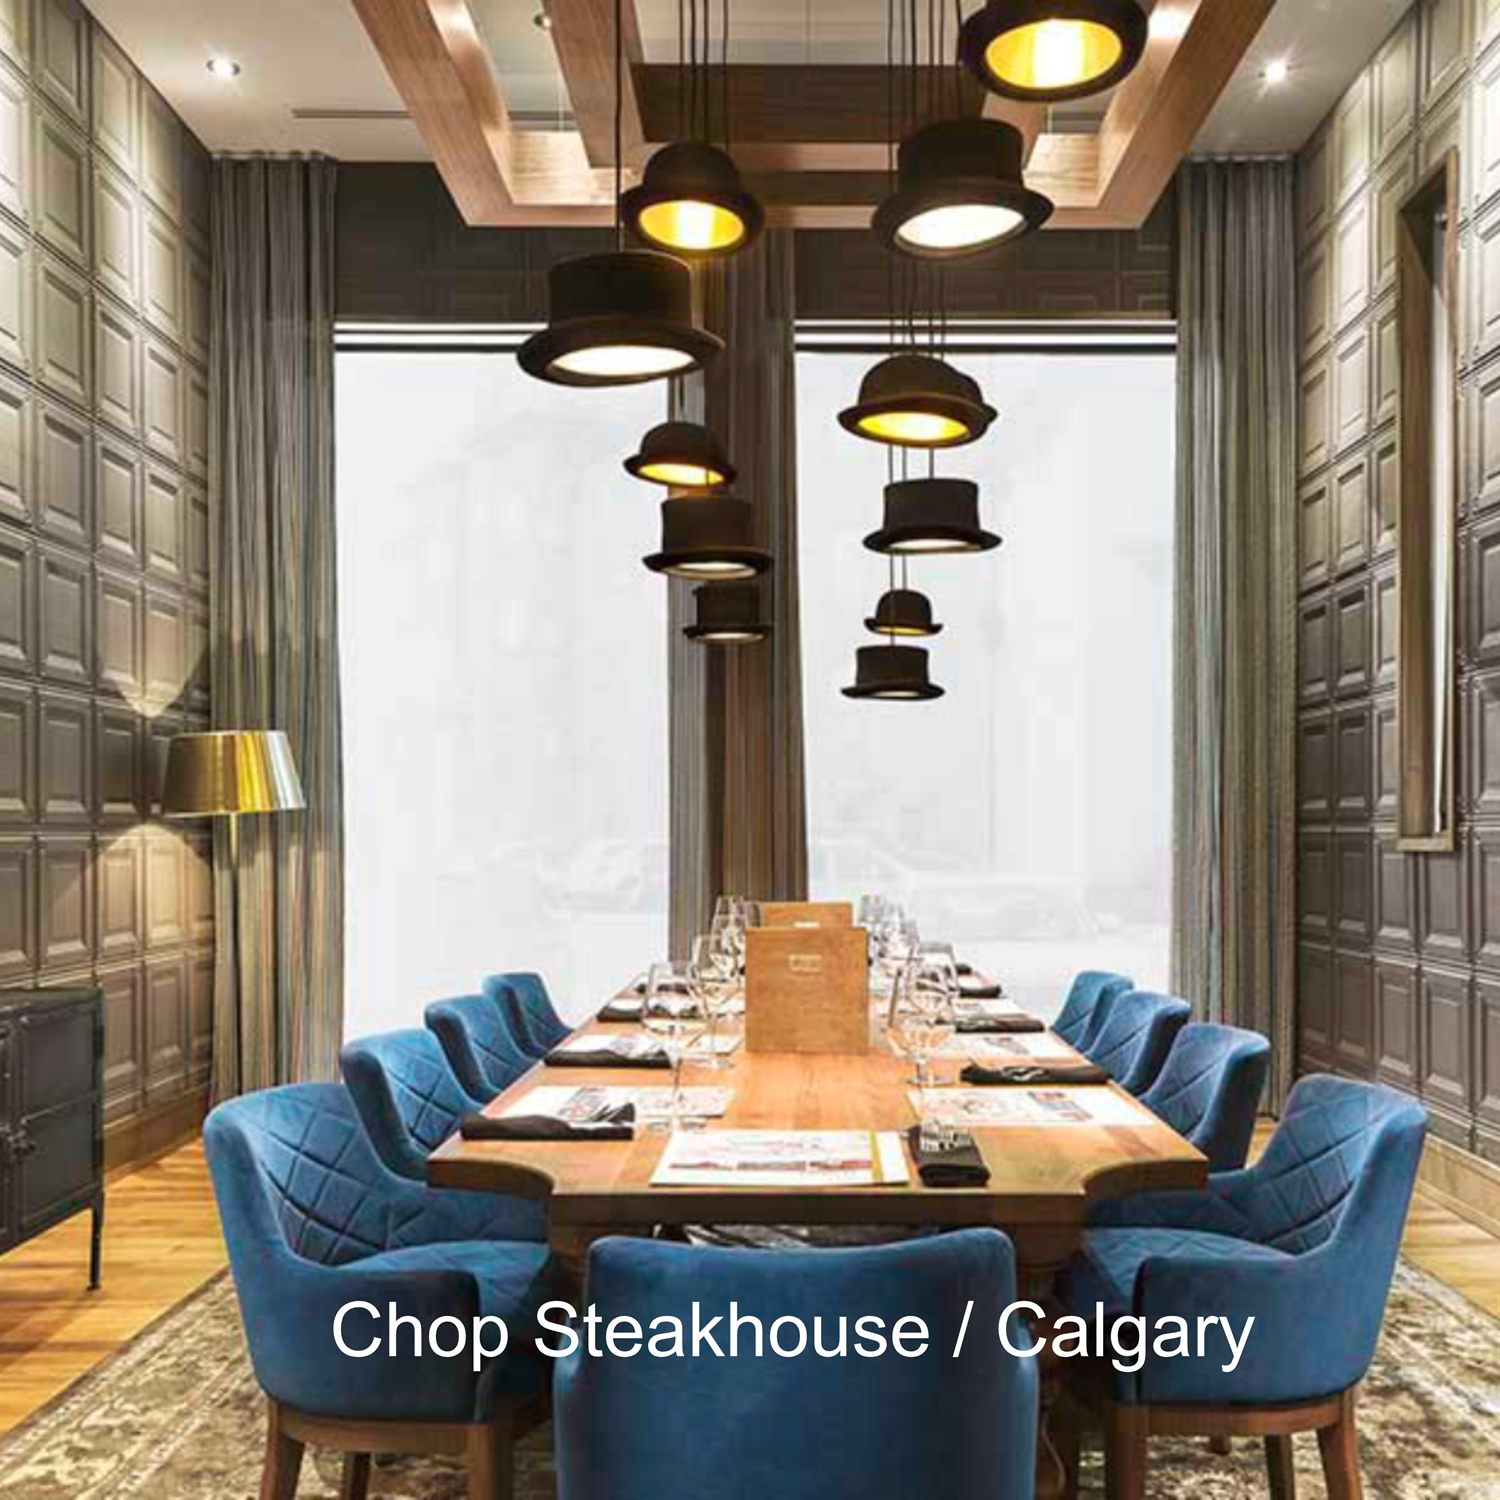 JEEVES & WOOSTER på Chop Steakhouse i Calgary